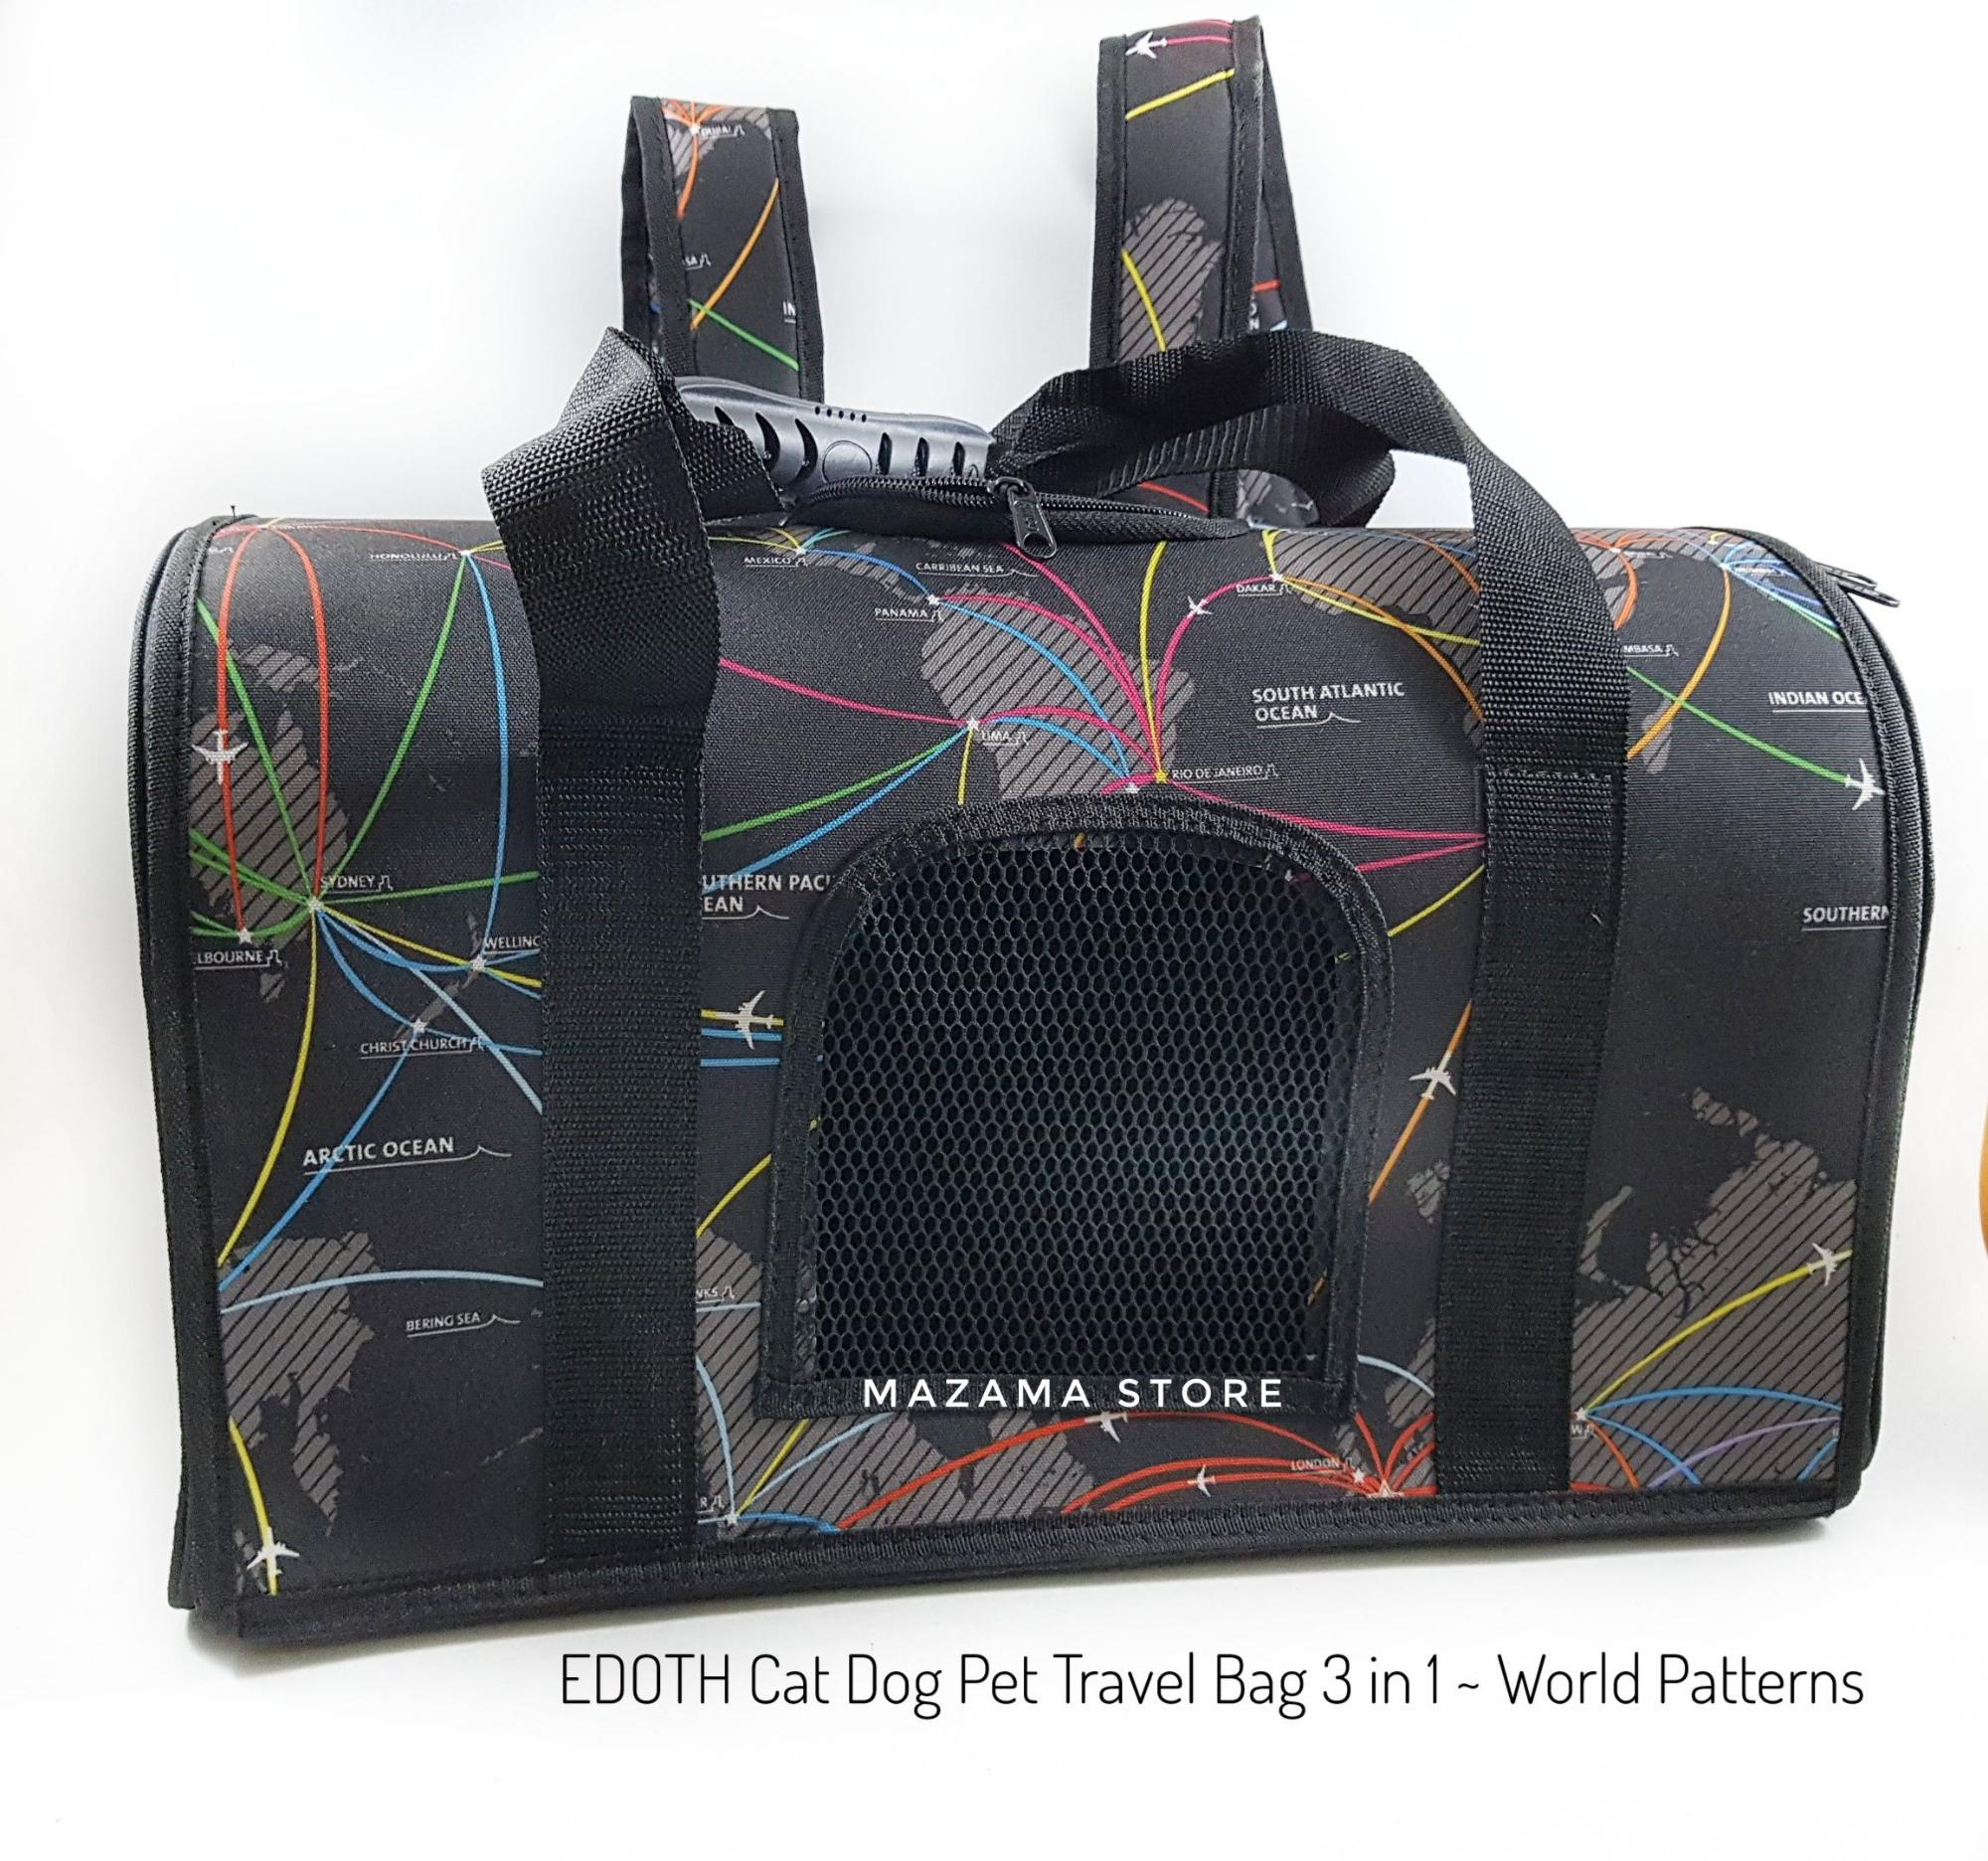 EDOTH Cat Dog 3 in 1 Pet Travel Bag World Patterns  / Kandang kucing / Kandang / Kandang Anjing / Kucing / Anjing / Travel Bag Pet / Ransel / Tas Gendong Kucing Anjing / Tas Jingjing Kucing Anjing / Backpack Cat Dog